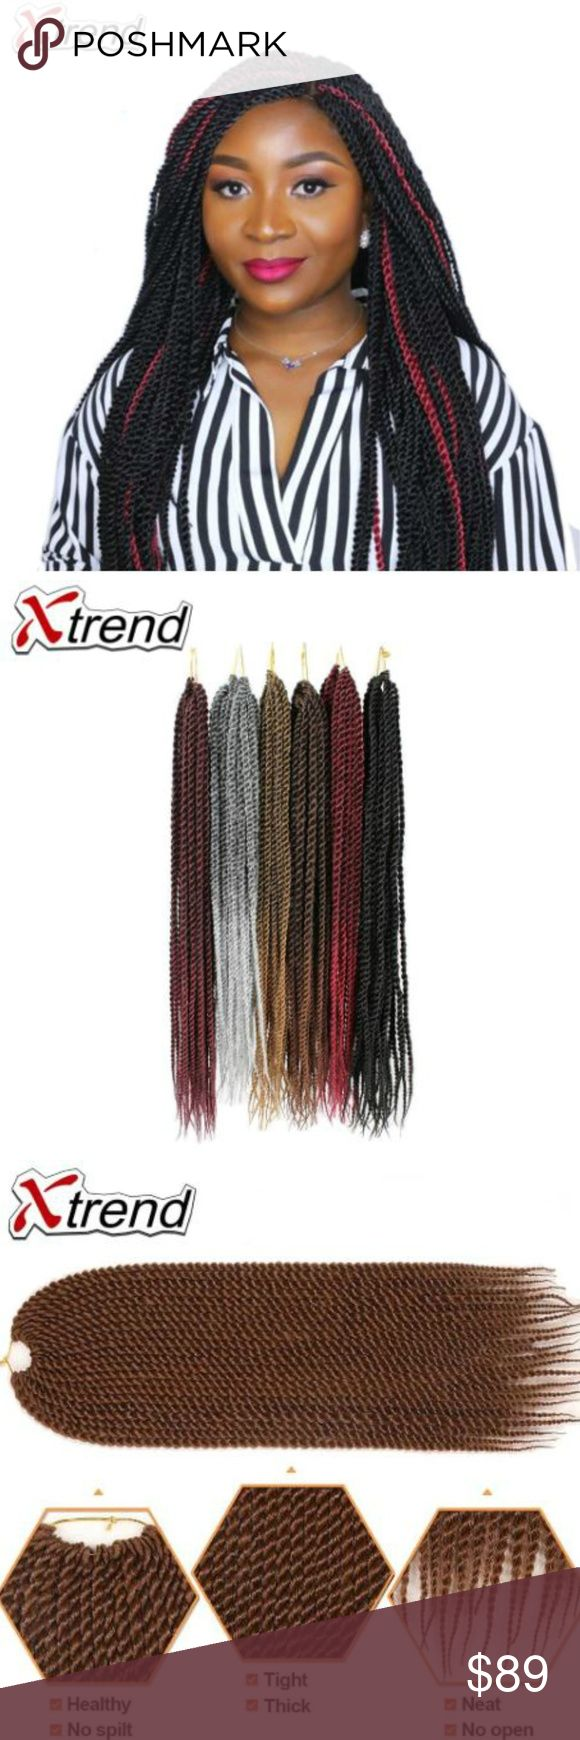 Synthetic Hair For Braiding Senegalese Twist Hair Xtrend 14 18 22 inch 30roots S…